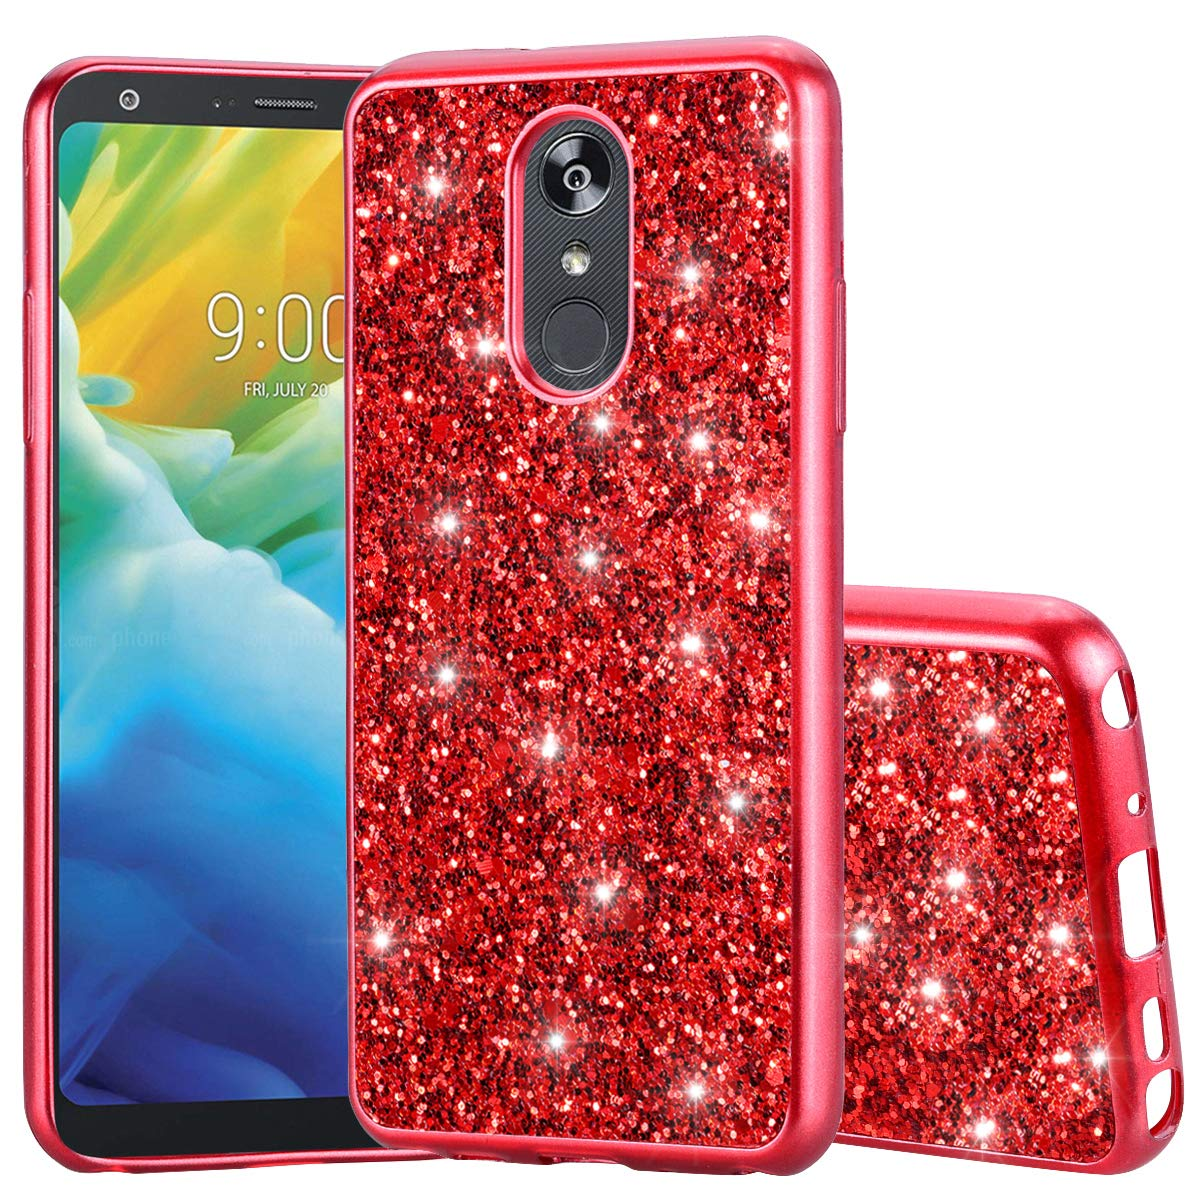 DAMONDY LG Stylo 4 Case,LG Stylo 4 Plus Case,LG Q Stylus Case,Bling Shiny Glitter Diamond Bumper Slim Flexible Soft Gel TPU Girls Women Protective Phone Case Back Cover for LG Stylo 4-red